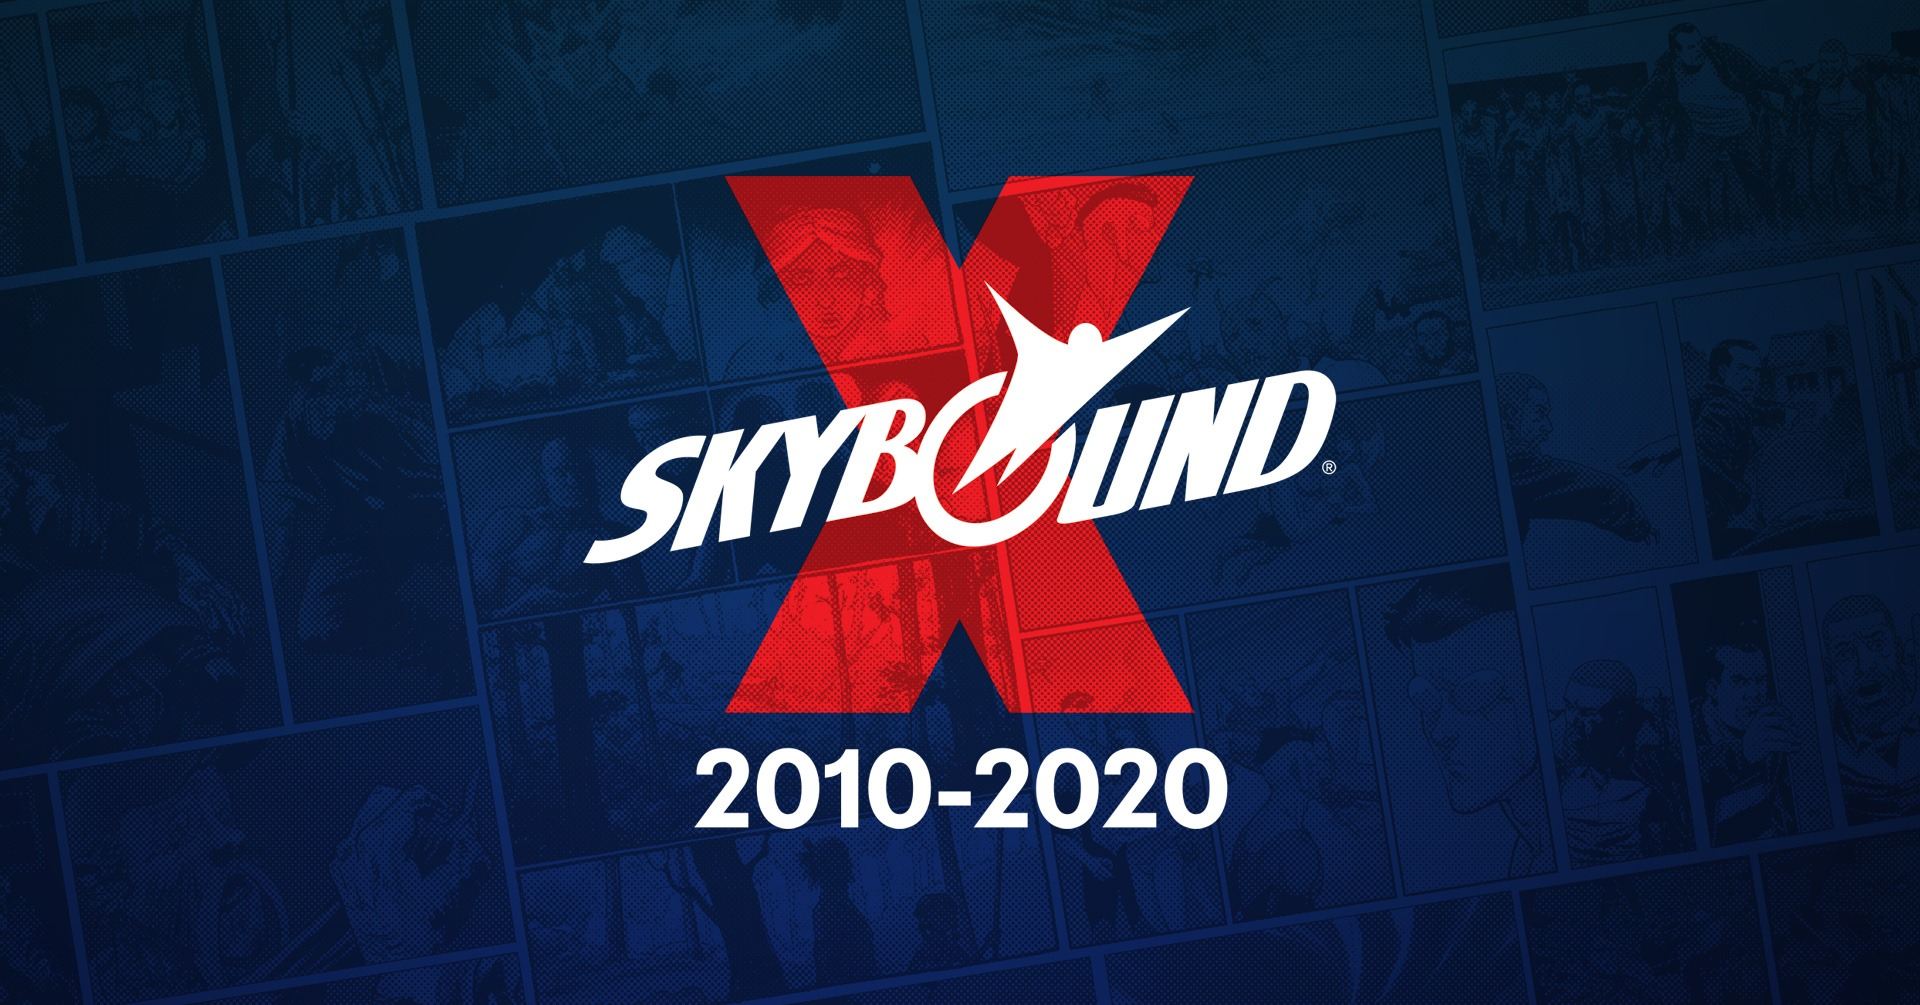 Skybound Xpo will kick-off Skybound's ten year anniversary July 18, and 19.